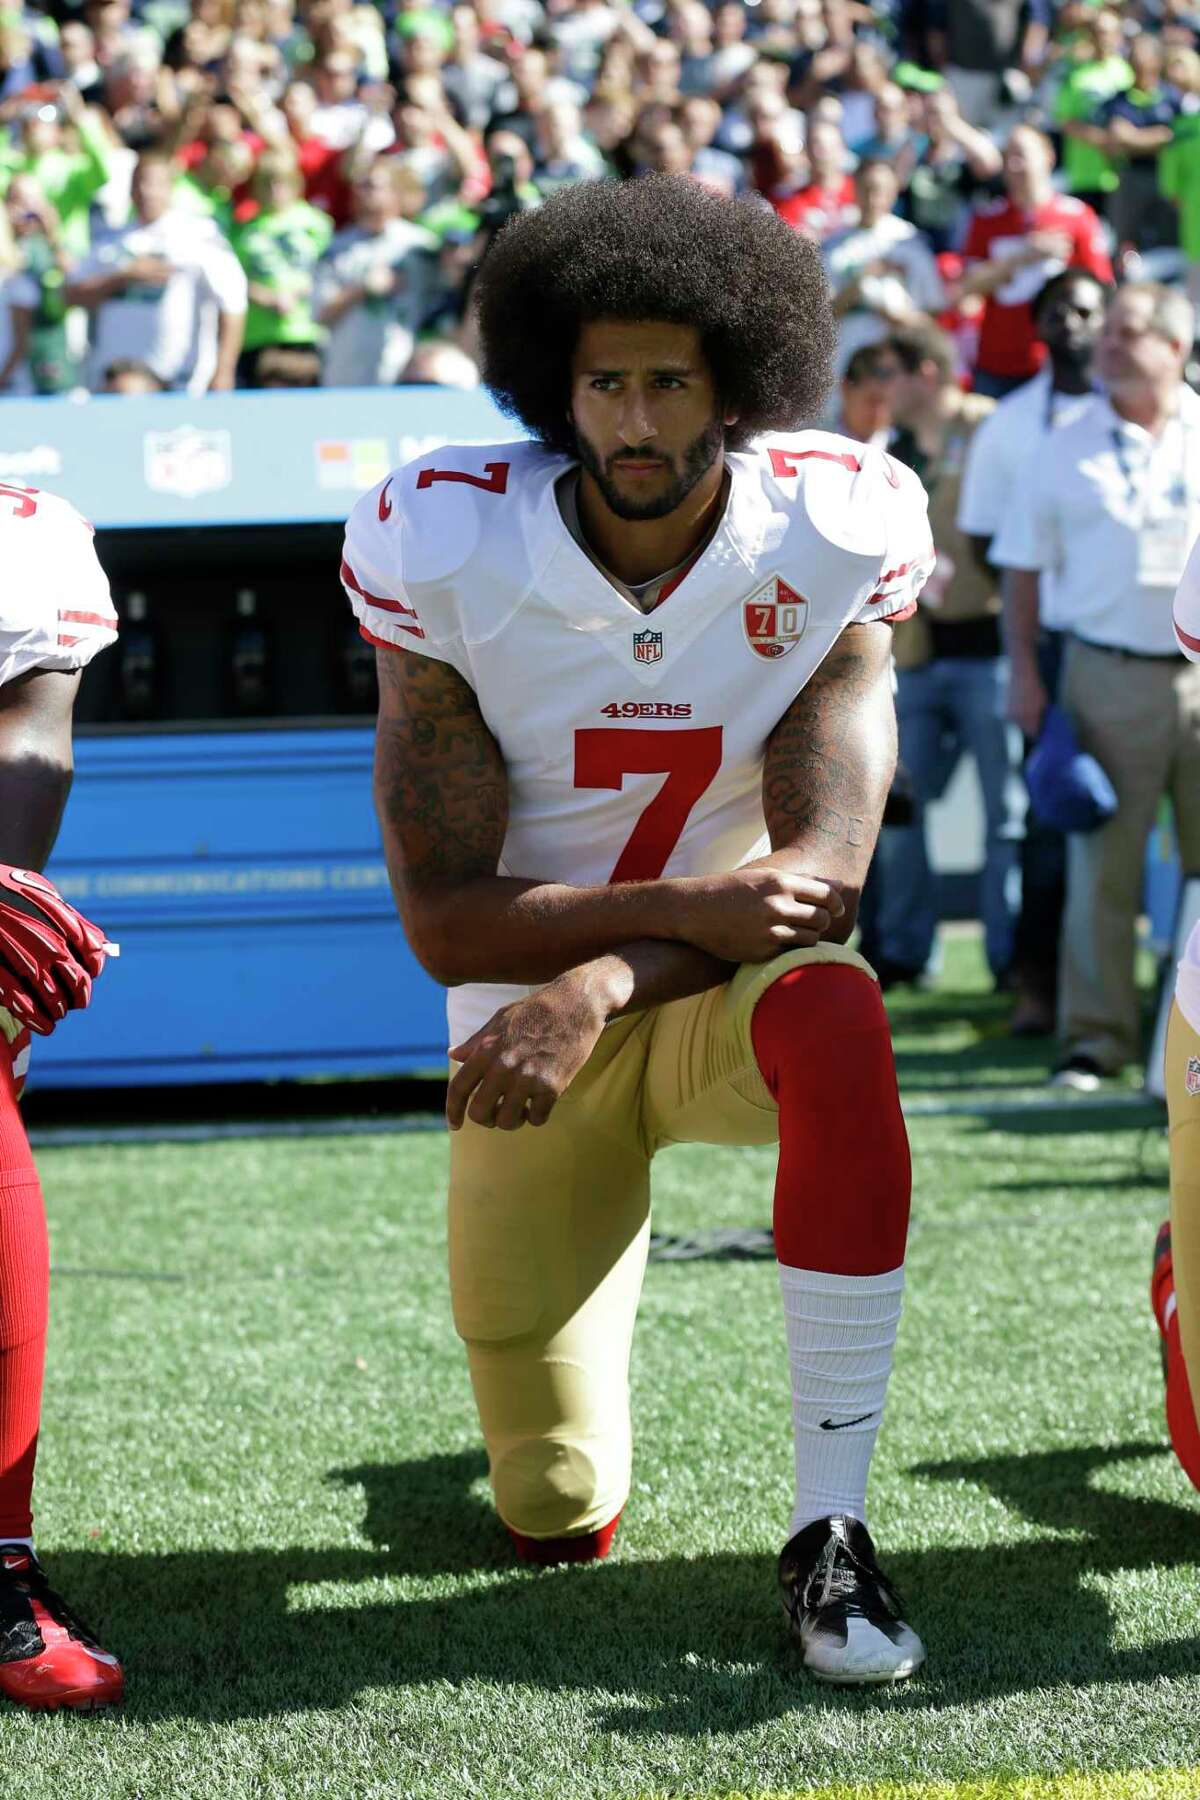 FILE - In this Sept. 25, 2016, file photo, San Francisco 49ers' Colin Kaepernick kneels during the national anthem before an NFL football game against the Seattle Seahawks, Sunday, Sept. 25, 2016, in Seattle. When Colin Kaepernick took a knee during the national anthem to take a stand against police brutality, racial injustice and social inequality, he was vilified by people who considered it an offense against the country, the flag and the military. Nearly four years later, it seems more people are starting to side with Kaepernicka€™s peaceful protest and now are calling out those who dona€™t understand the intent behind his action. (AP Photo/Ted S. Warren, File)